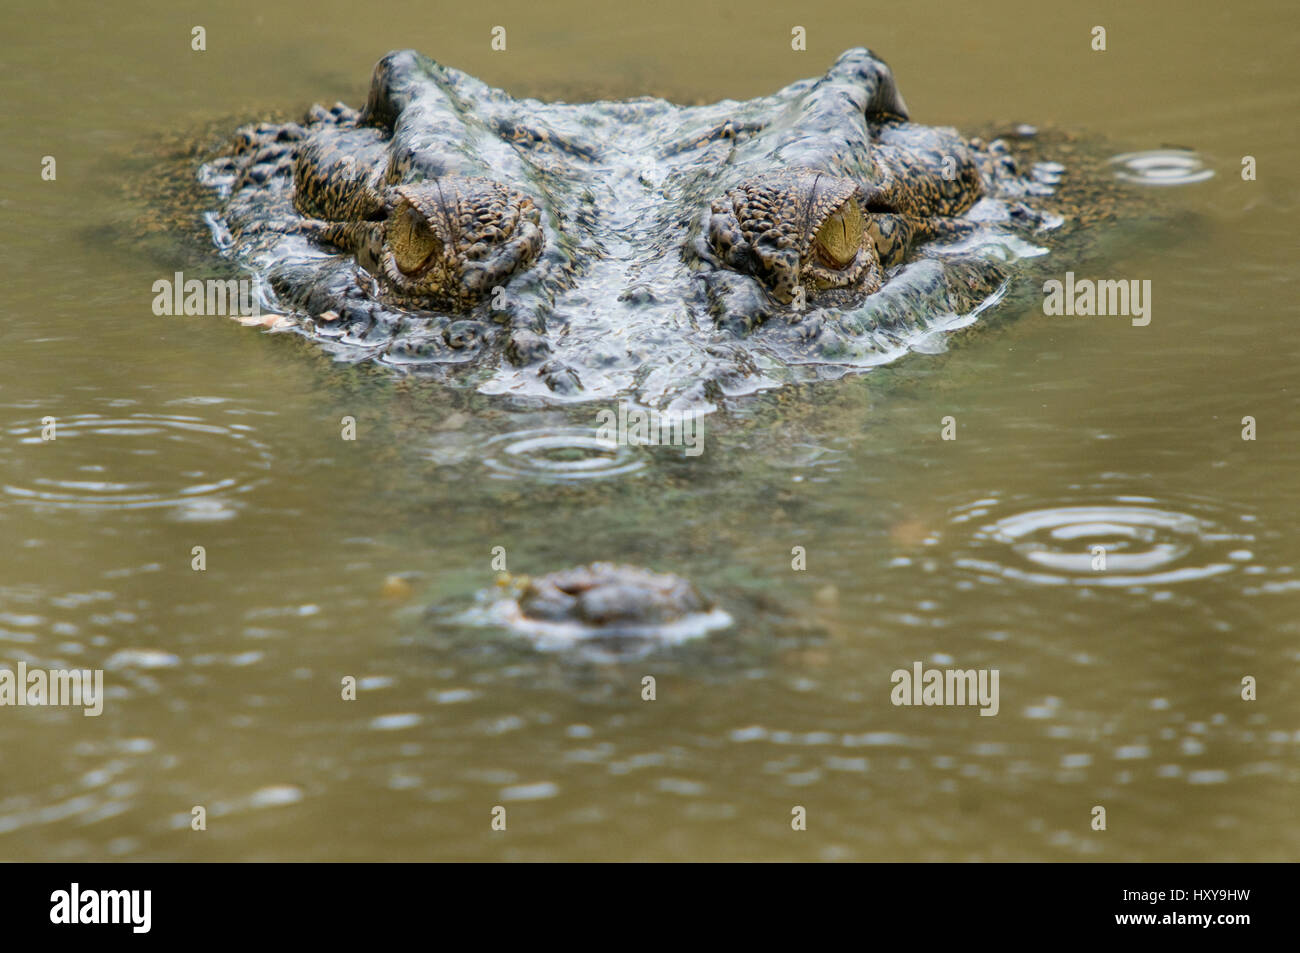 Saltwater crocodile (Crocodylus porosus) partially submerged with ripples on water from raindrops. Sarawak, Borneo, - Stock Image